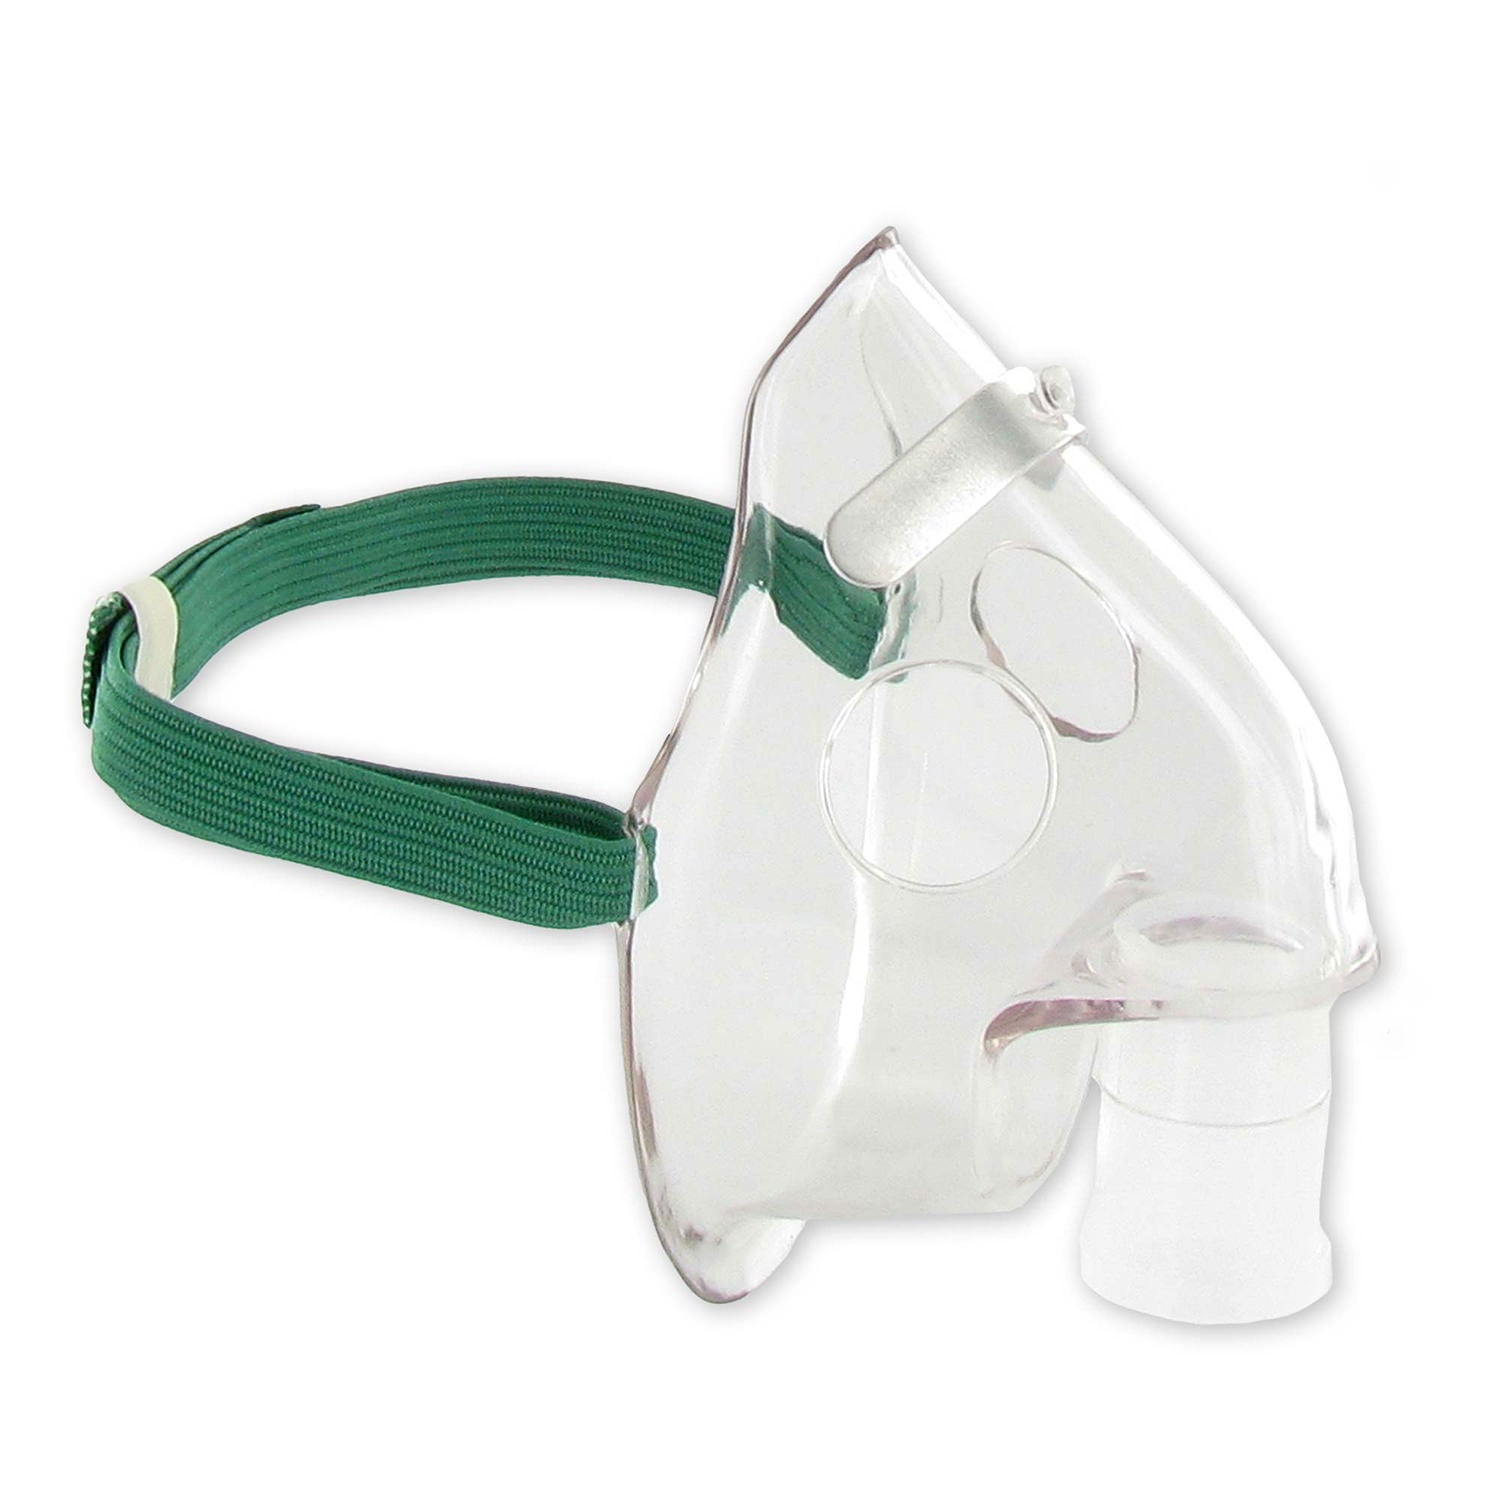 Adult Mask for MOST compressor Nebulizer Systems